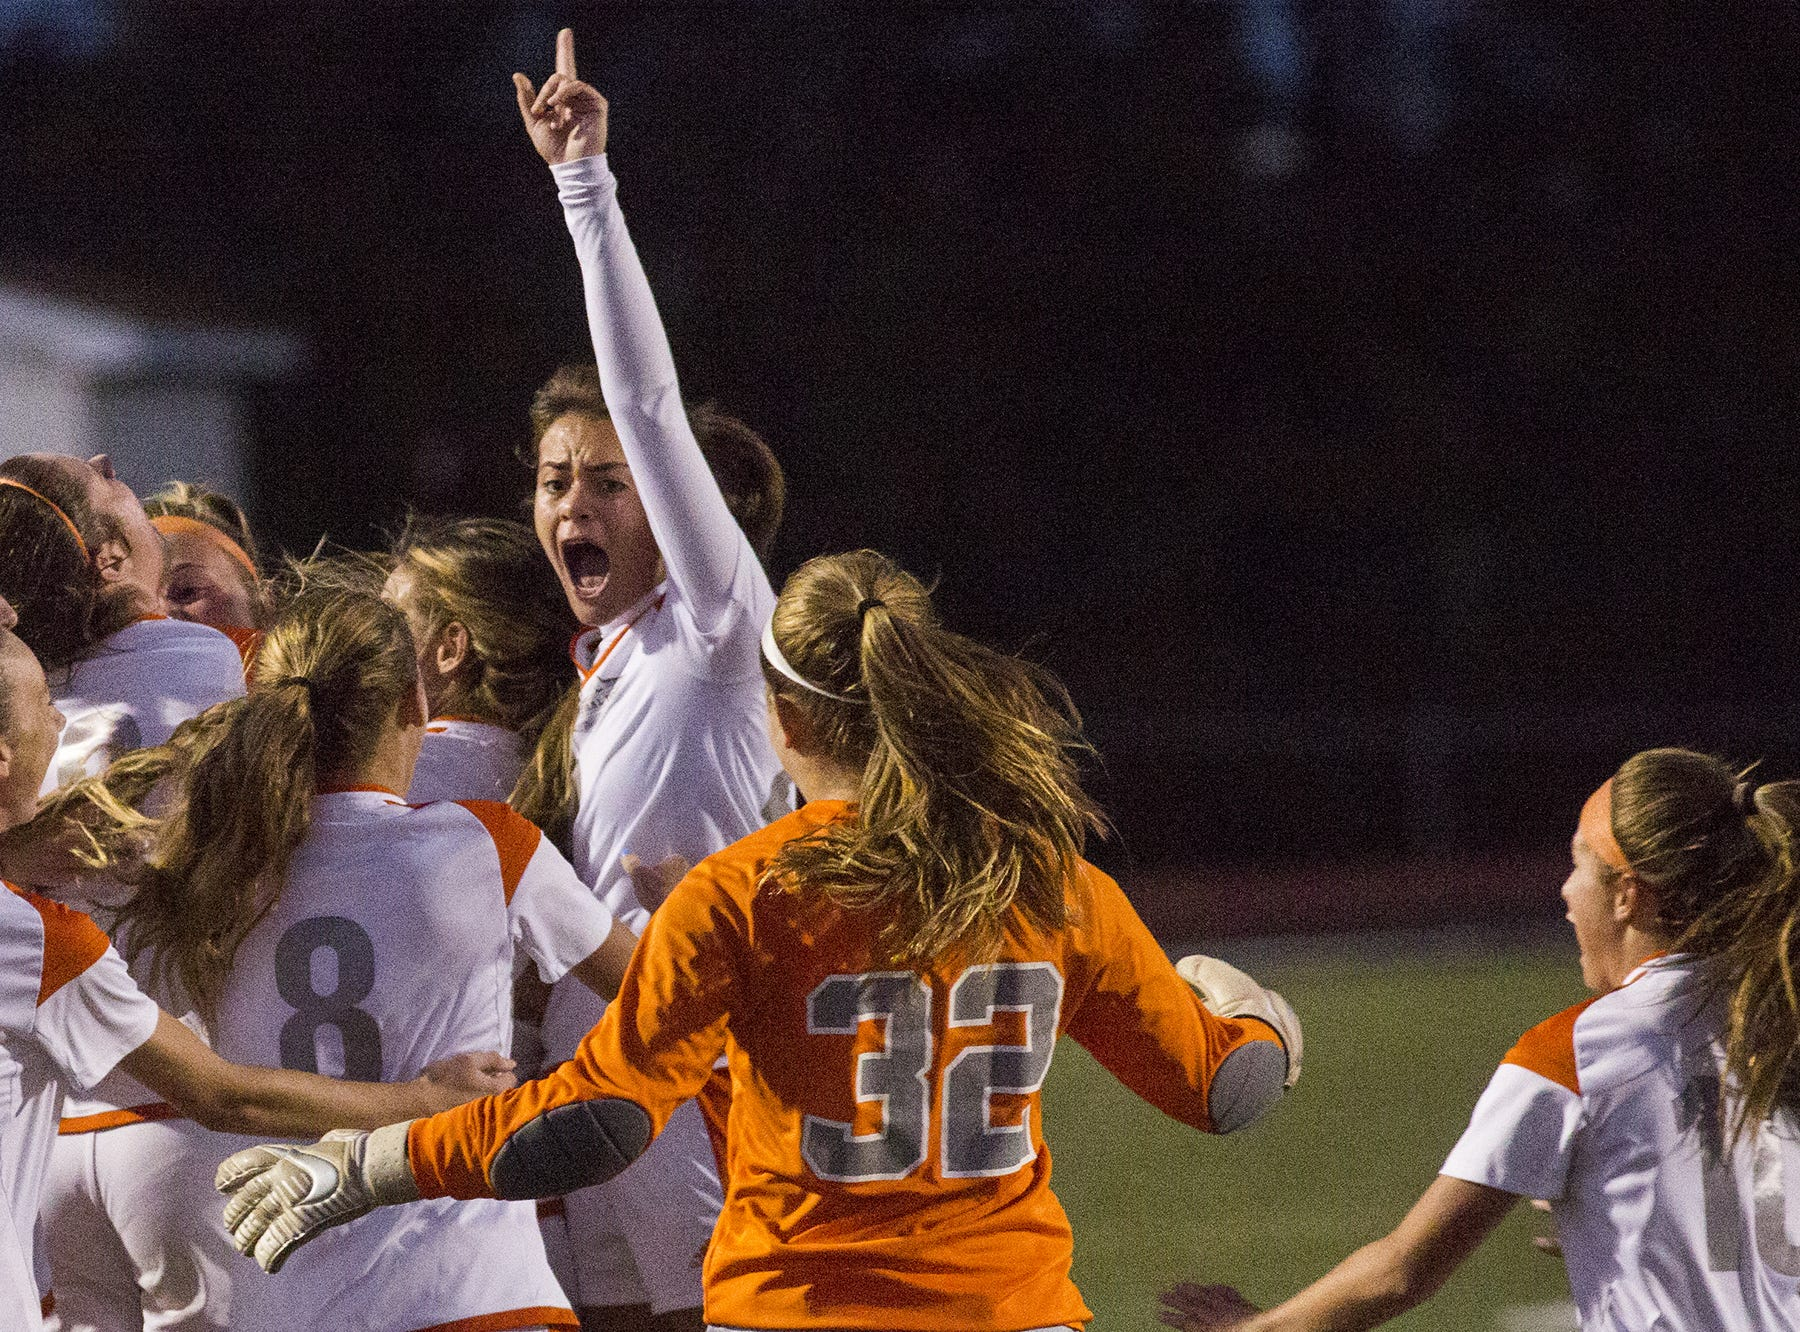 Central York celebrates their victory as the game ends. Central York defeats Red Lion 1-0 in the YAIAA girls' soccer championship game at Northeastern High School in Manchester, Saturday, October 20, 2018.